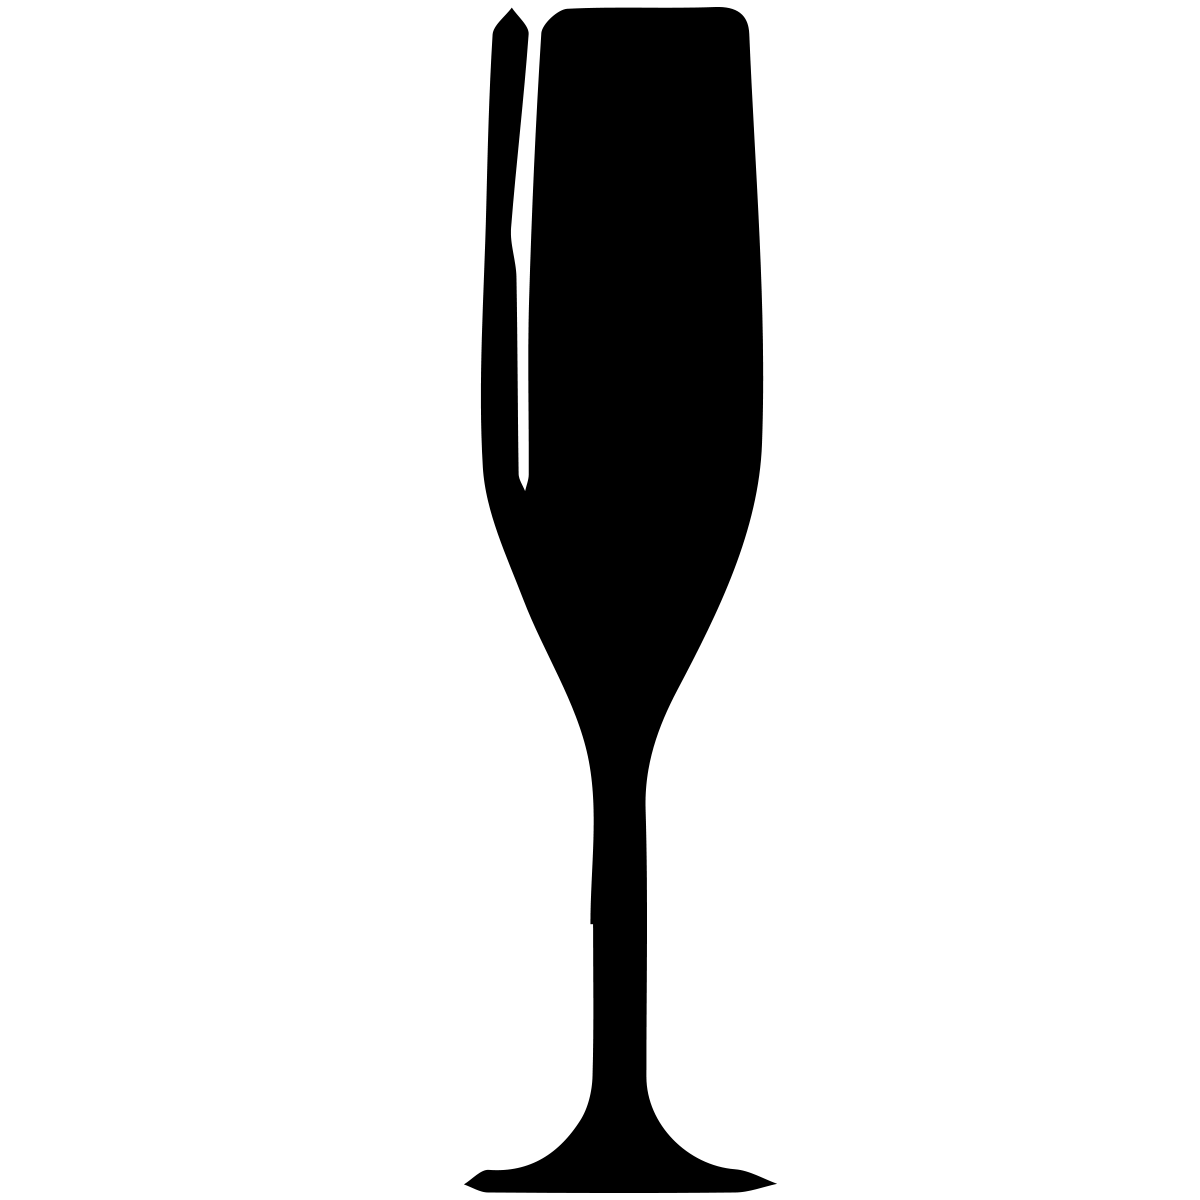 Champagne glasses at getdrawings. Silhouette clipart wine glass